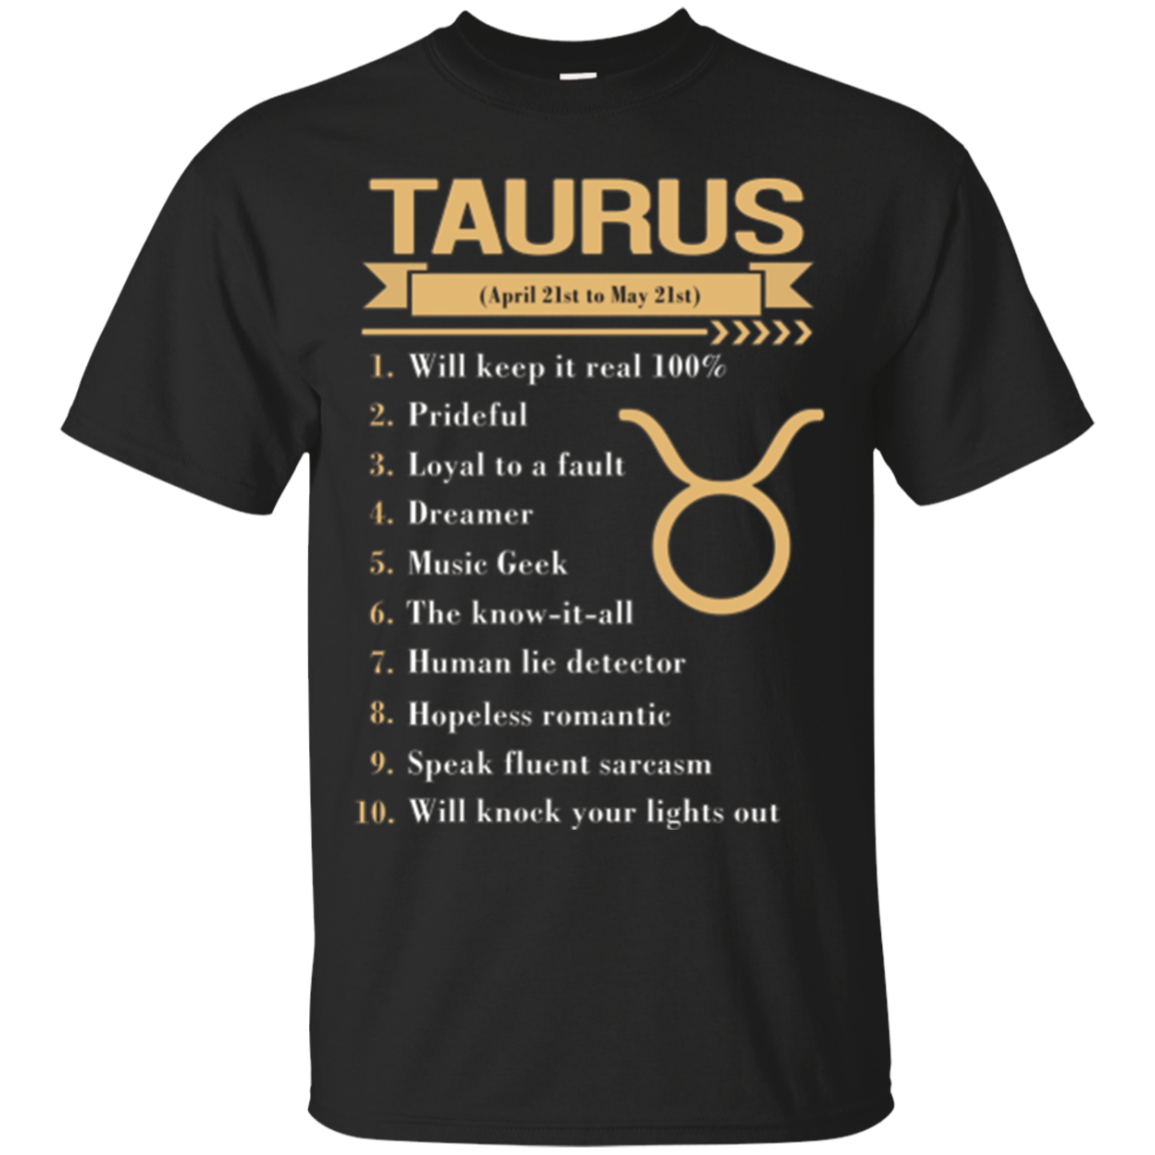 Taurus Queens, Taurus Kings, Taurus facts T Shirts